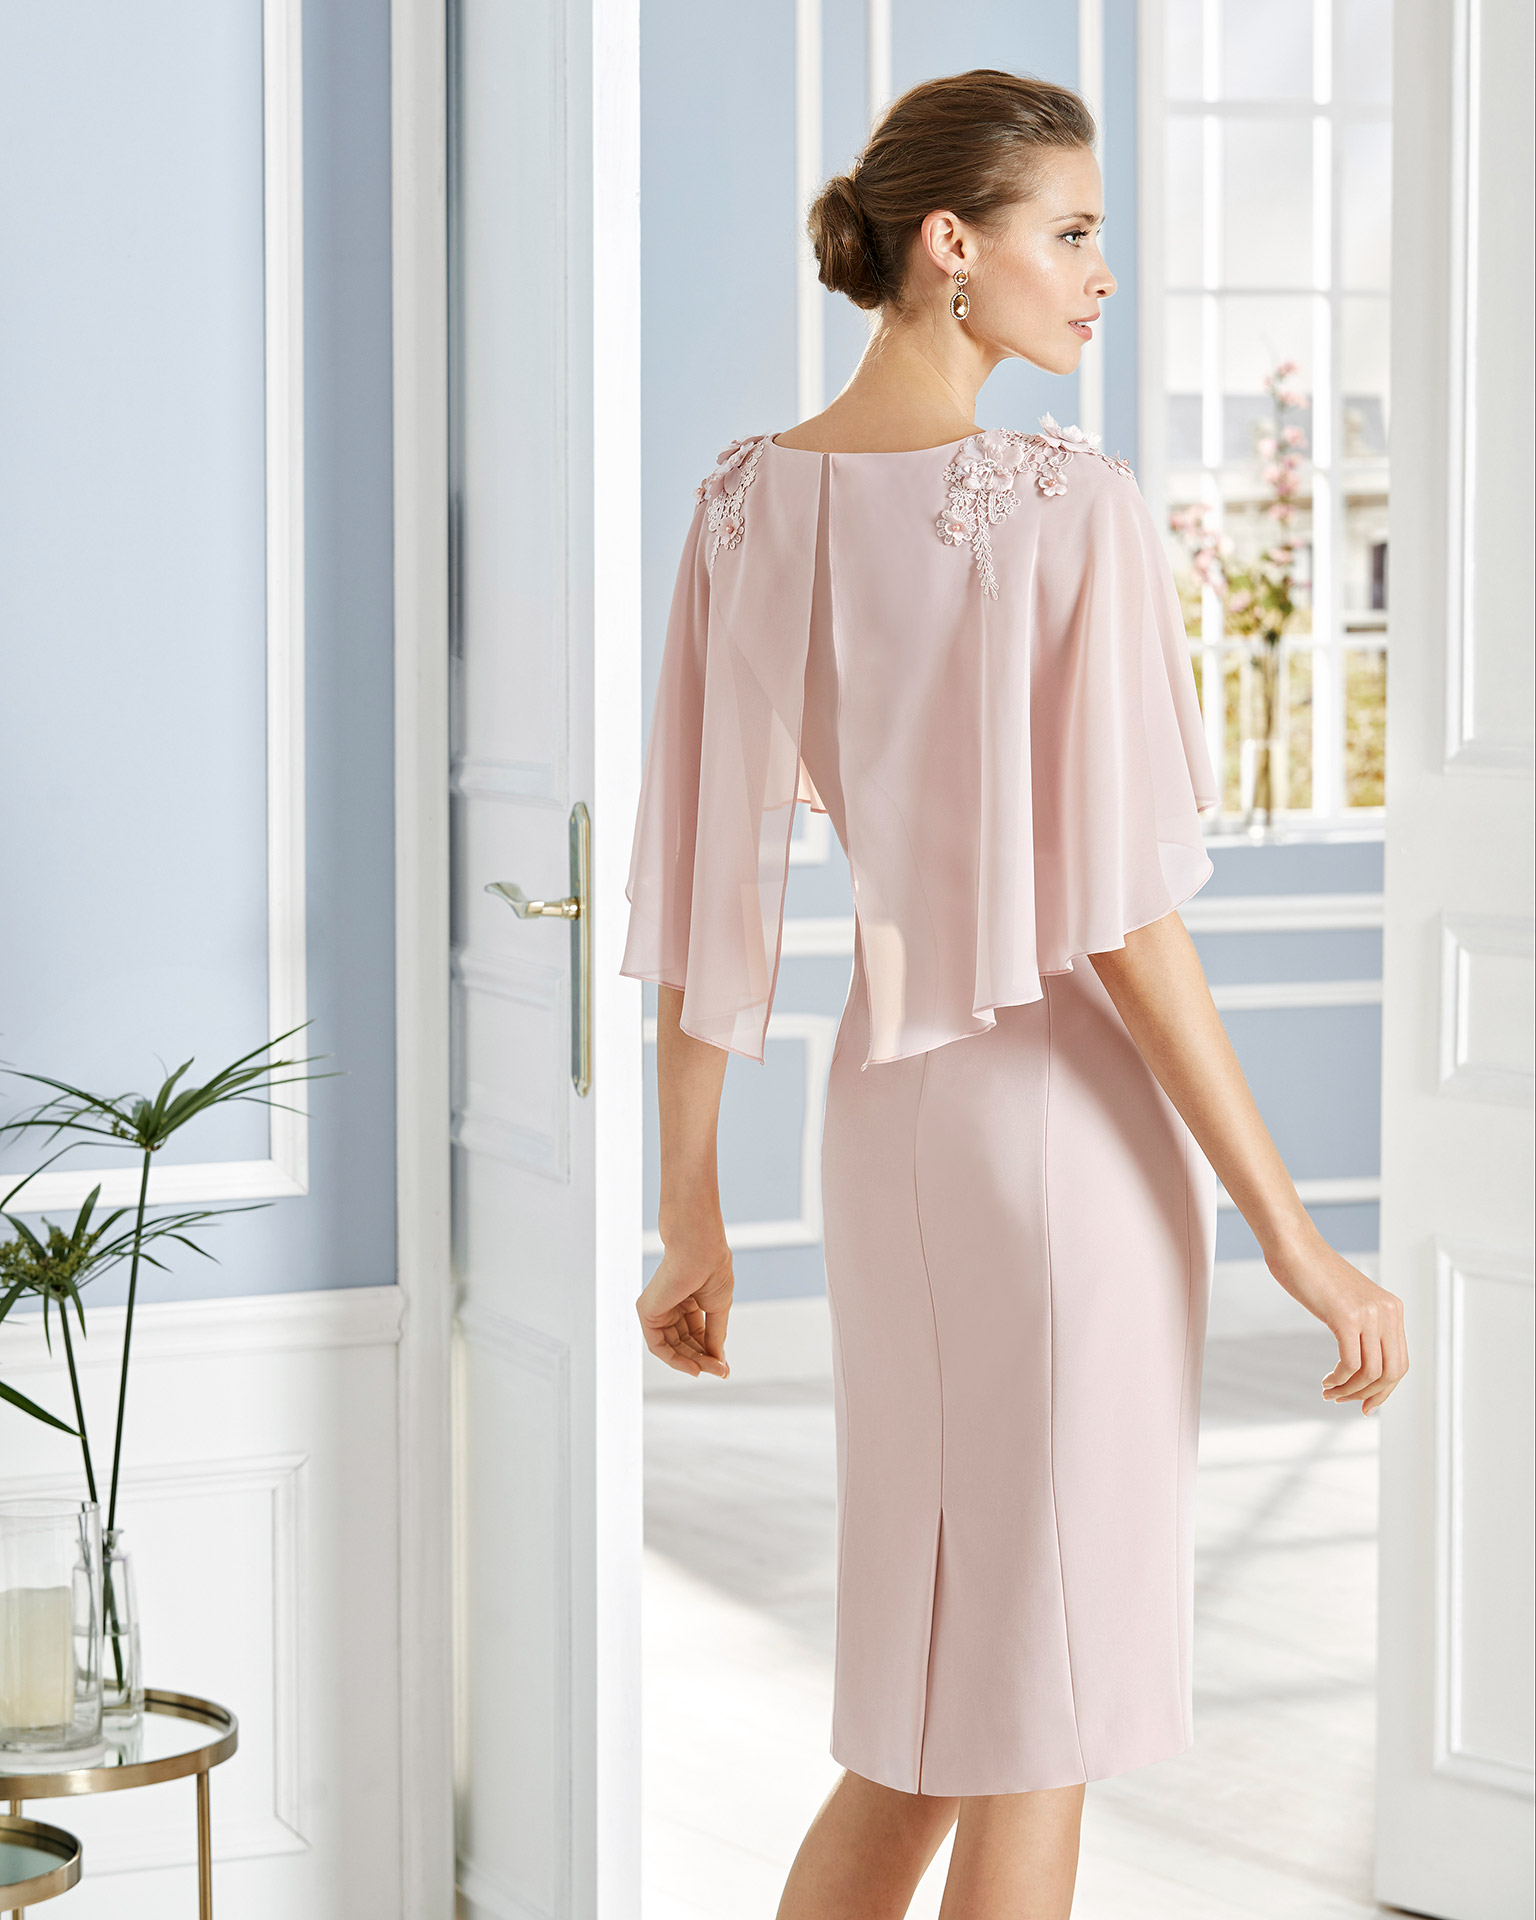 Short cocktail dress in crepe sateen with lace on the bodice. V-neckline and cape sleeves with lace on the shoulders. 2020 COUTURE CLUB Collection.